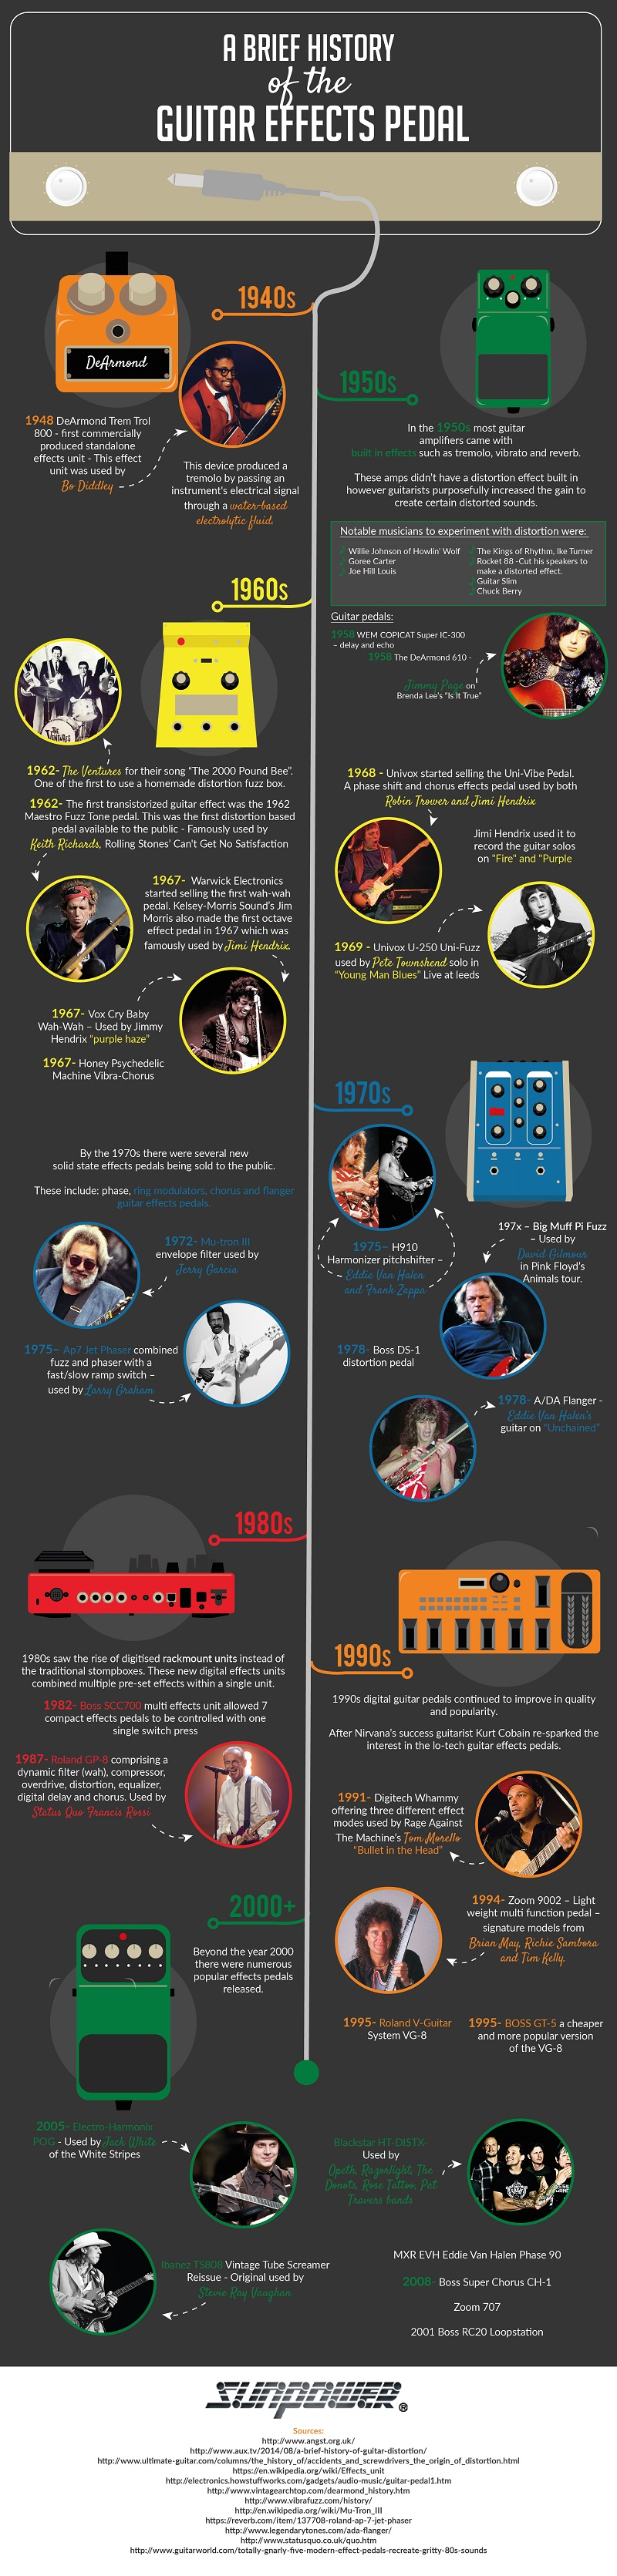 a brief history of guitar effects pedals infographic. Black Bedroom Furniture Sets. Home Design Ideas